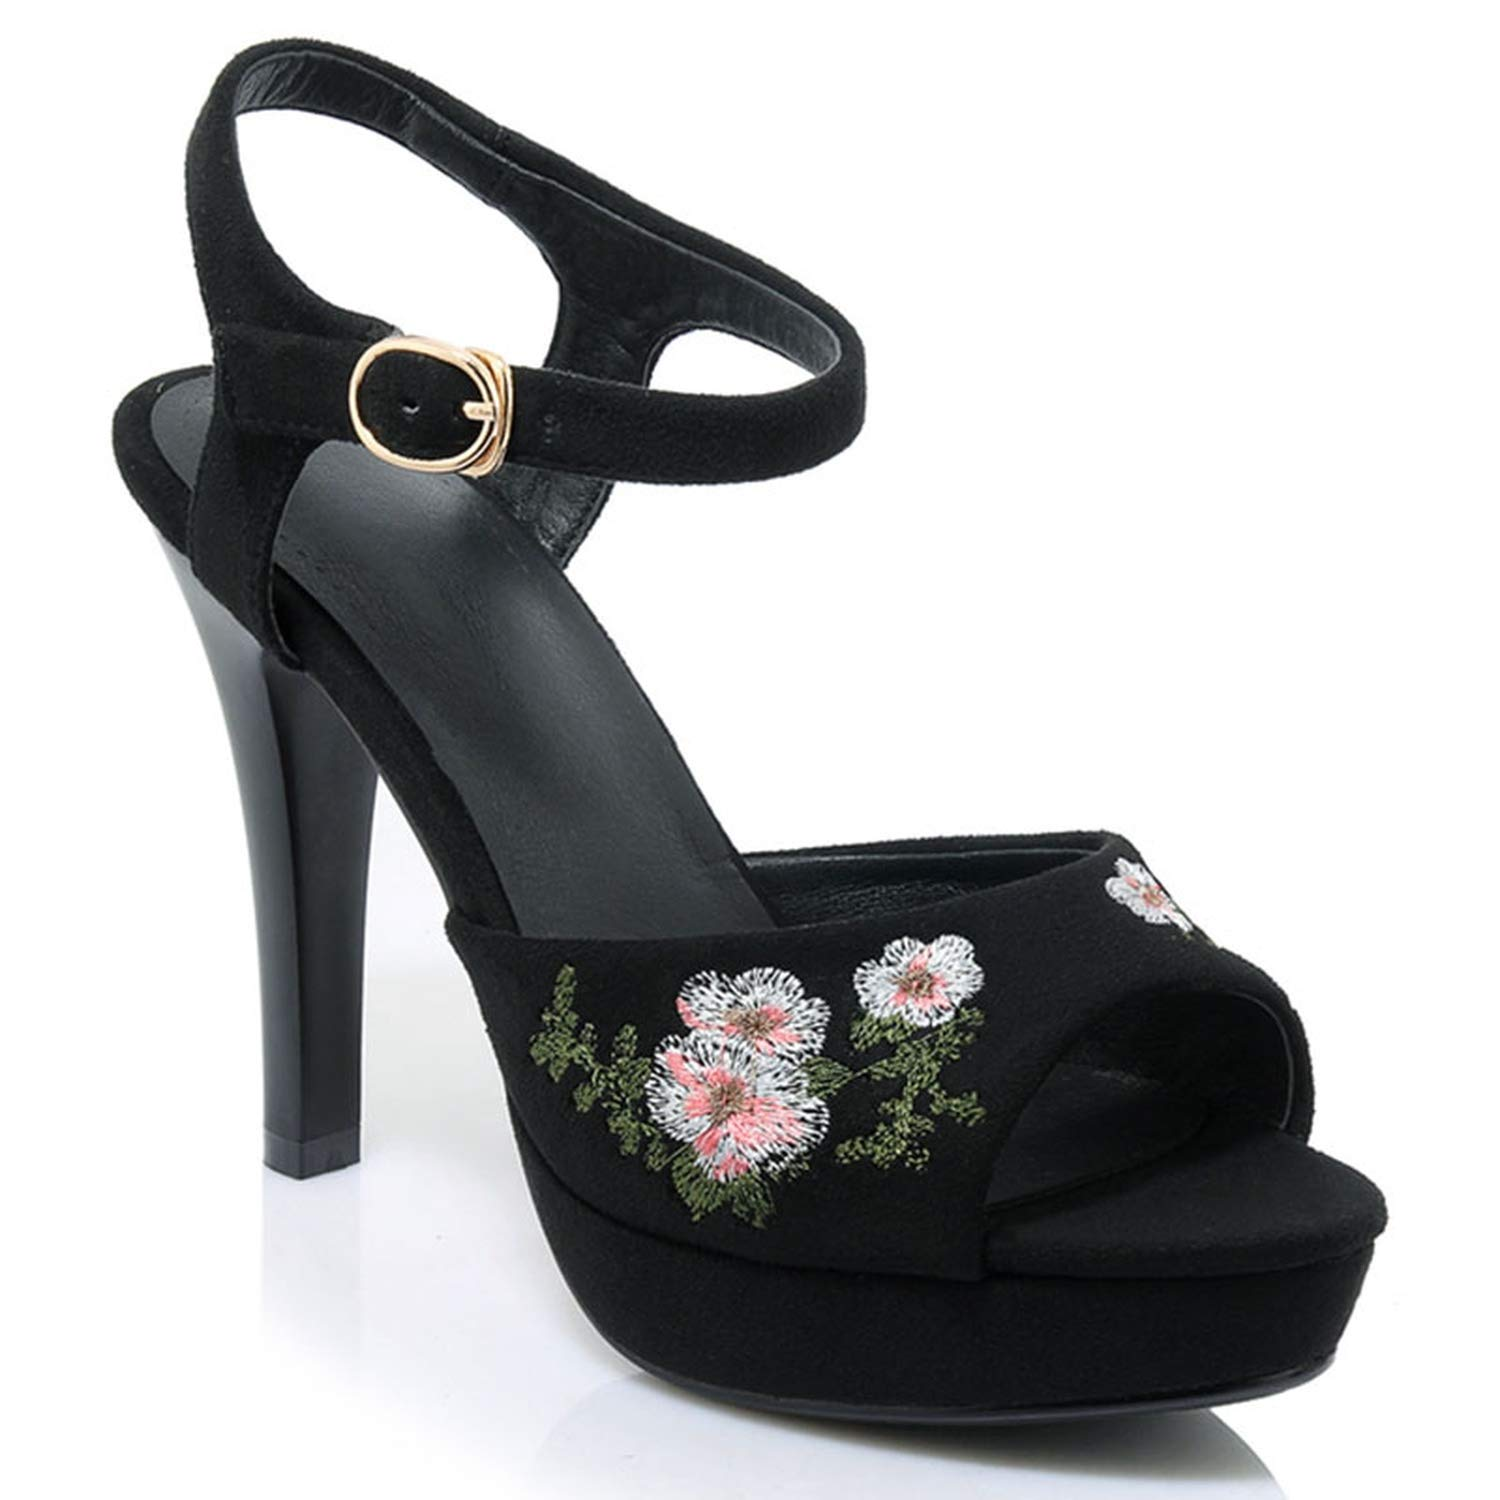 Suede Black Summer Toe Buckle Strap Comfortable High Heels Embroidered Sandals